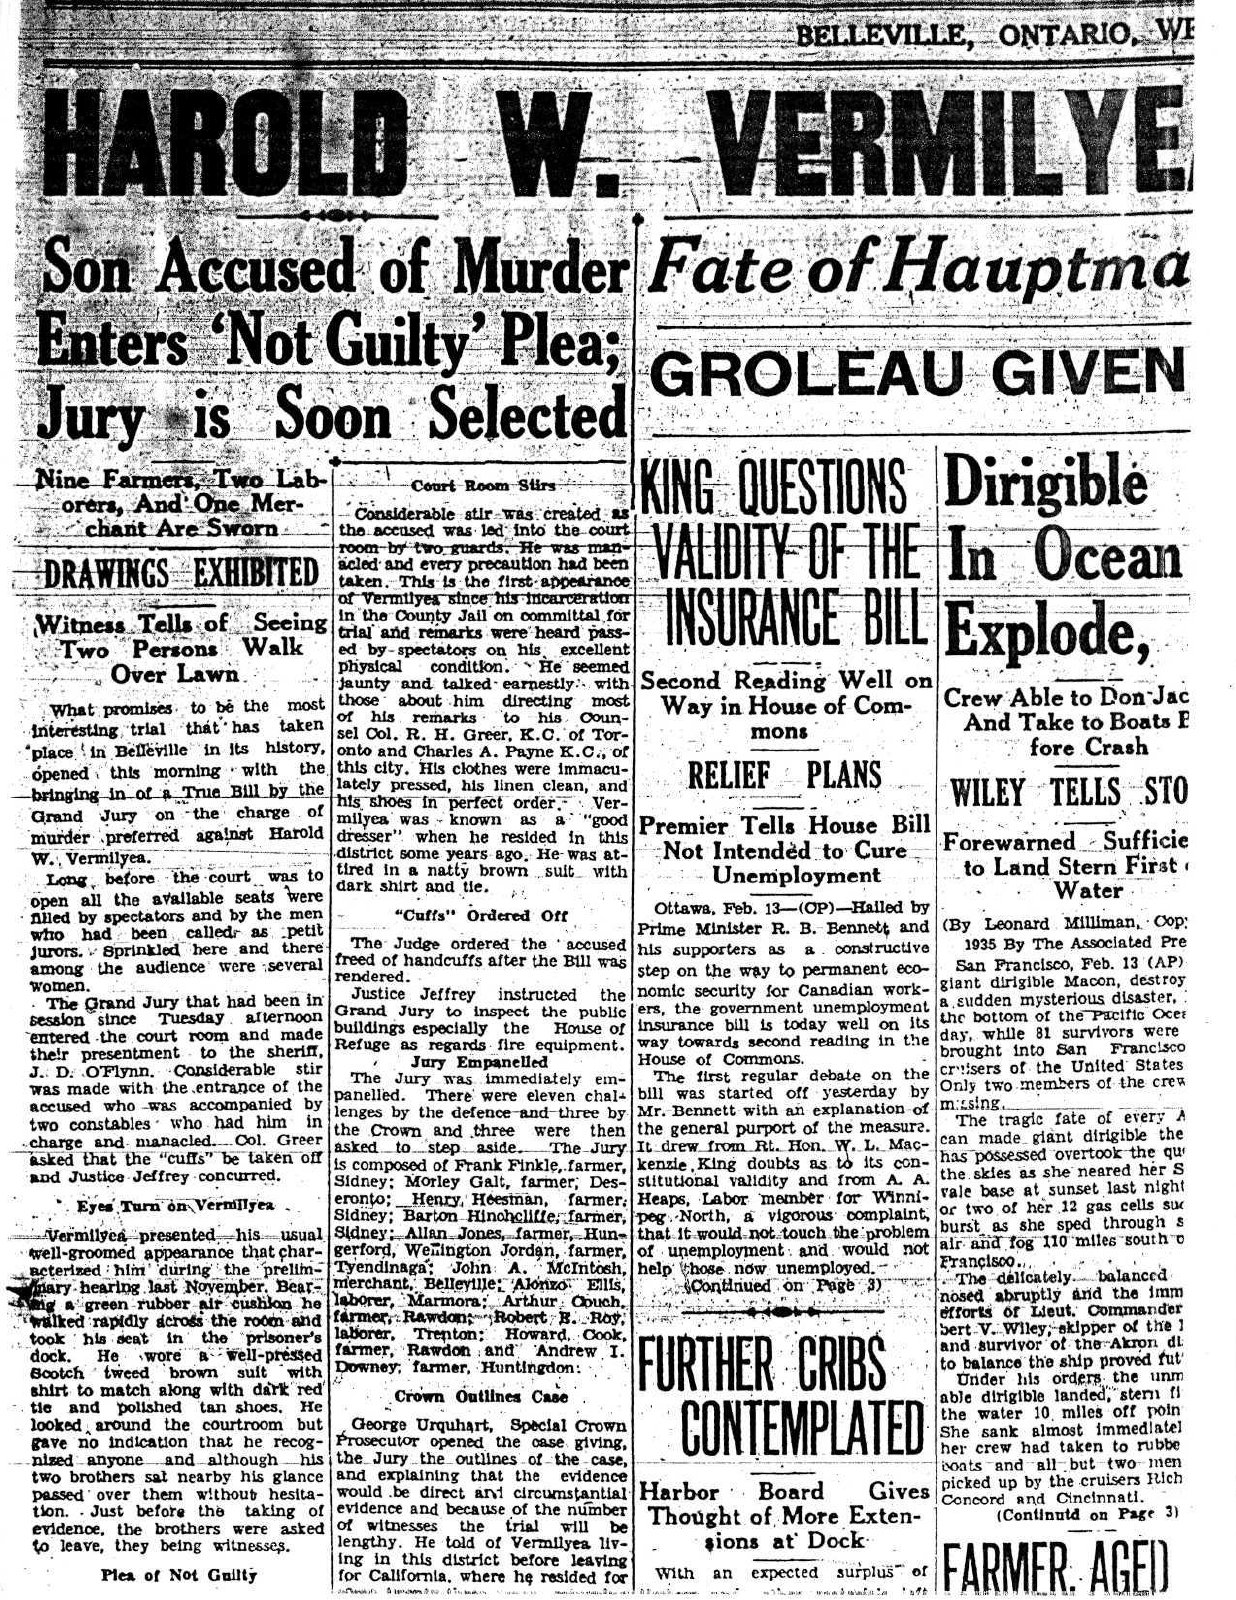 Harold Vermilyea is Placed on Trial